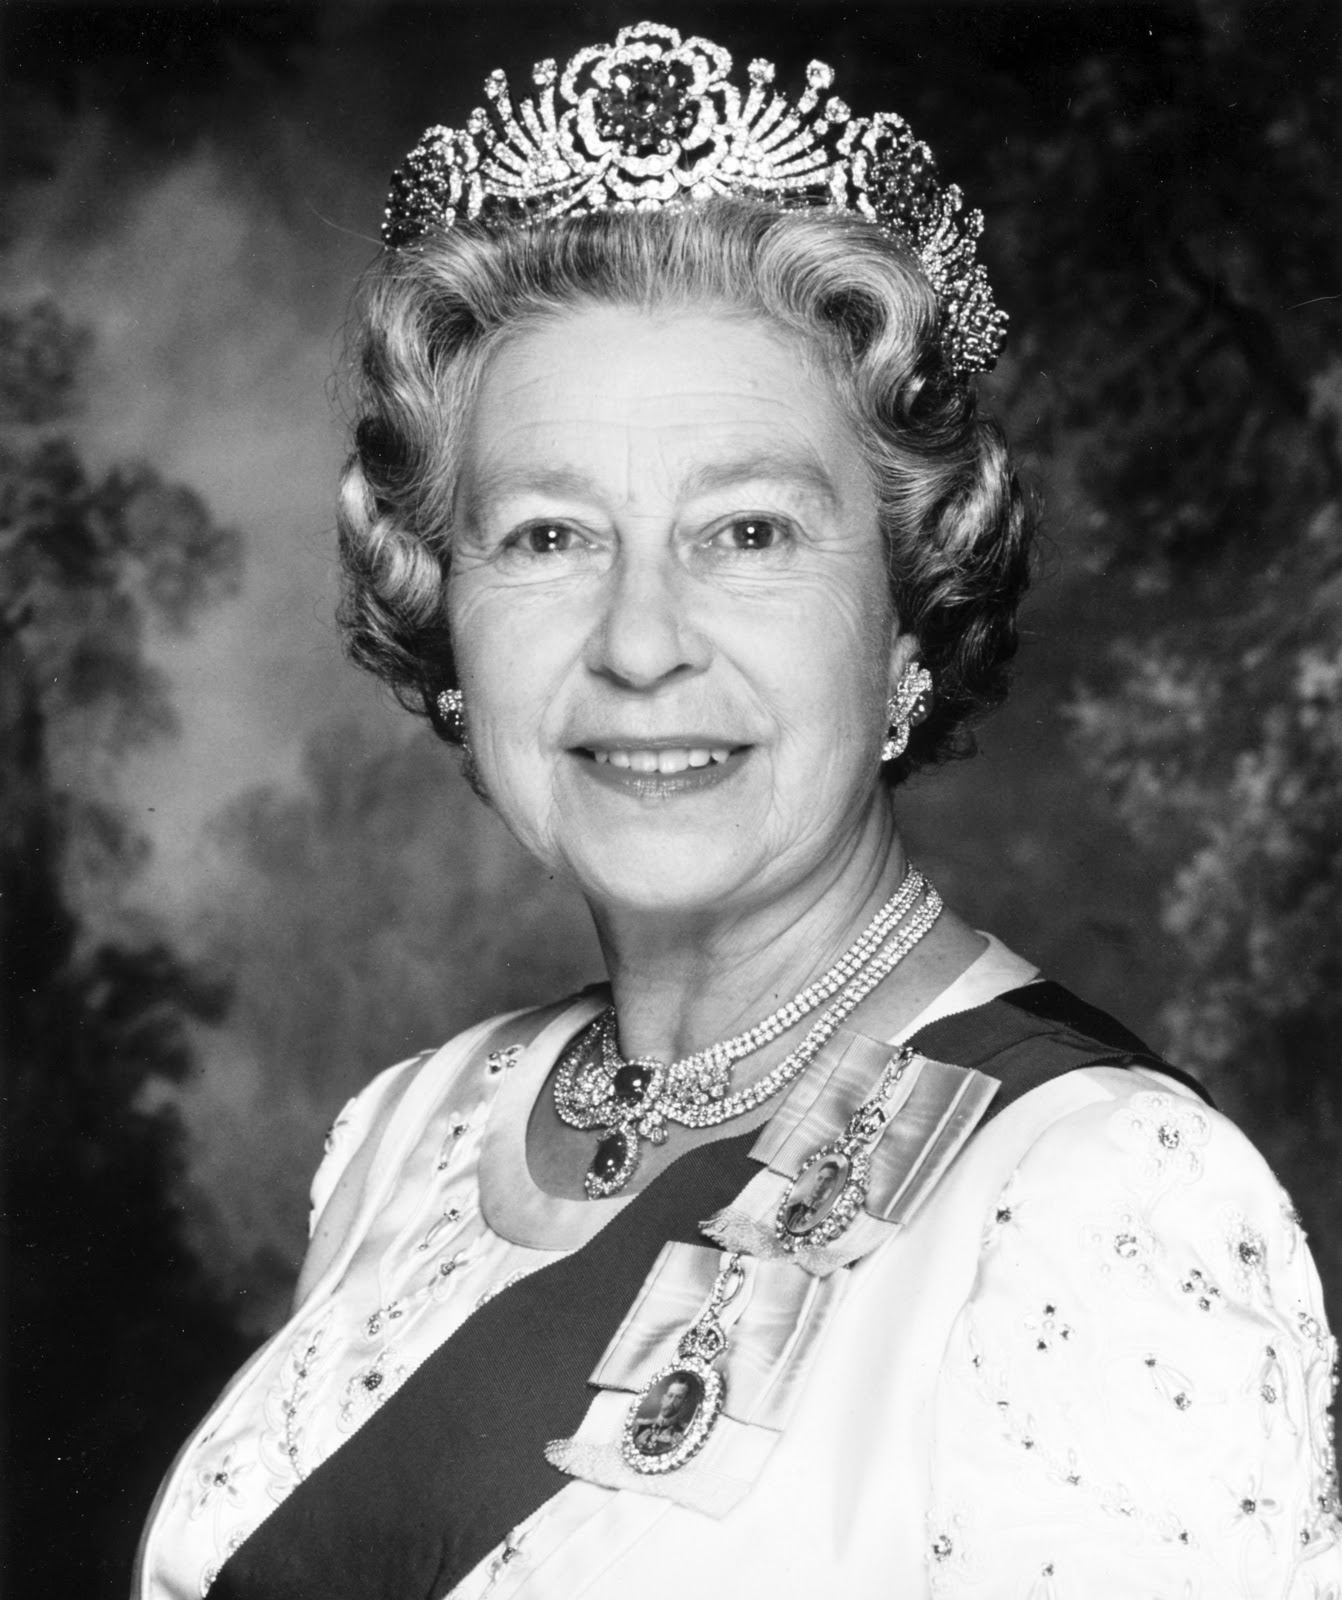 Eurohistory: UK: The Queen Hospitalized